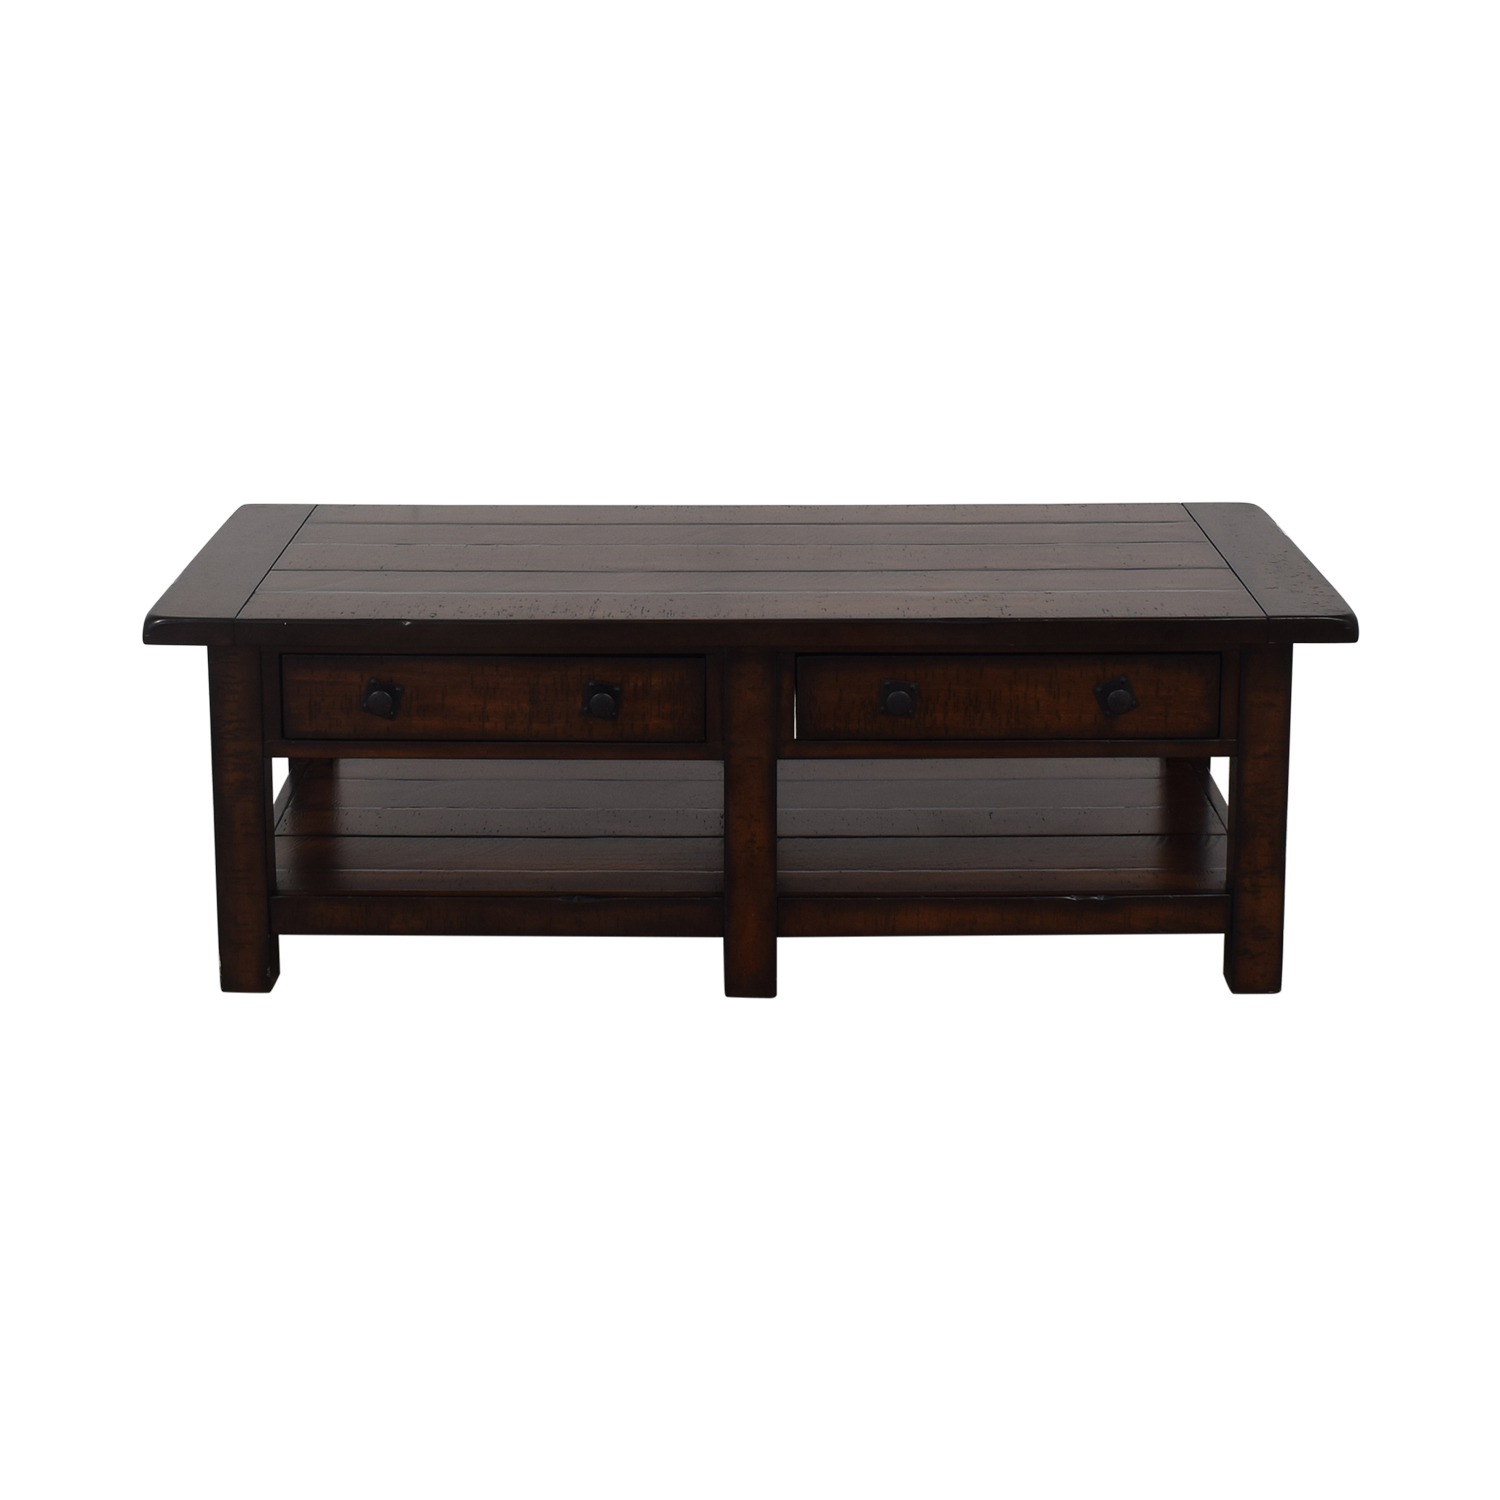 Pottery Barn Pottery Barn Benchwright Coffee Table dark brown